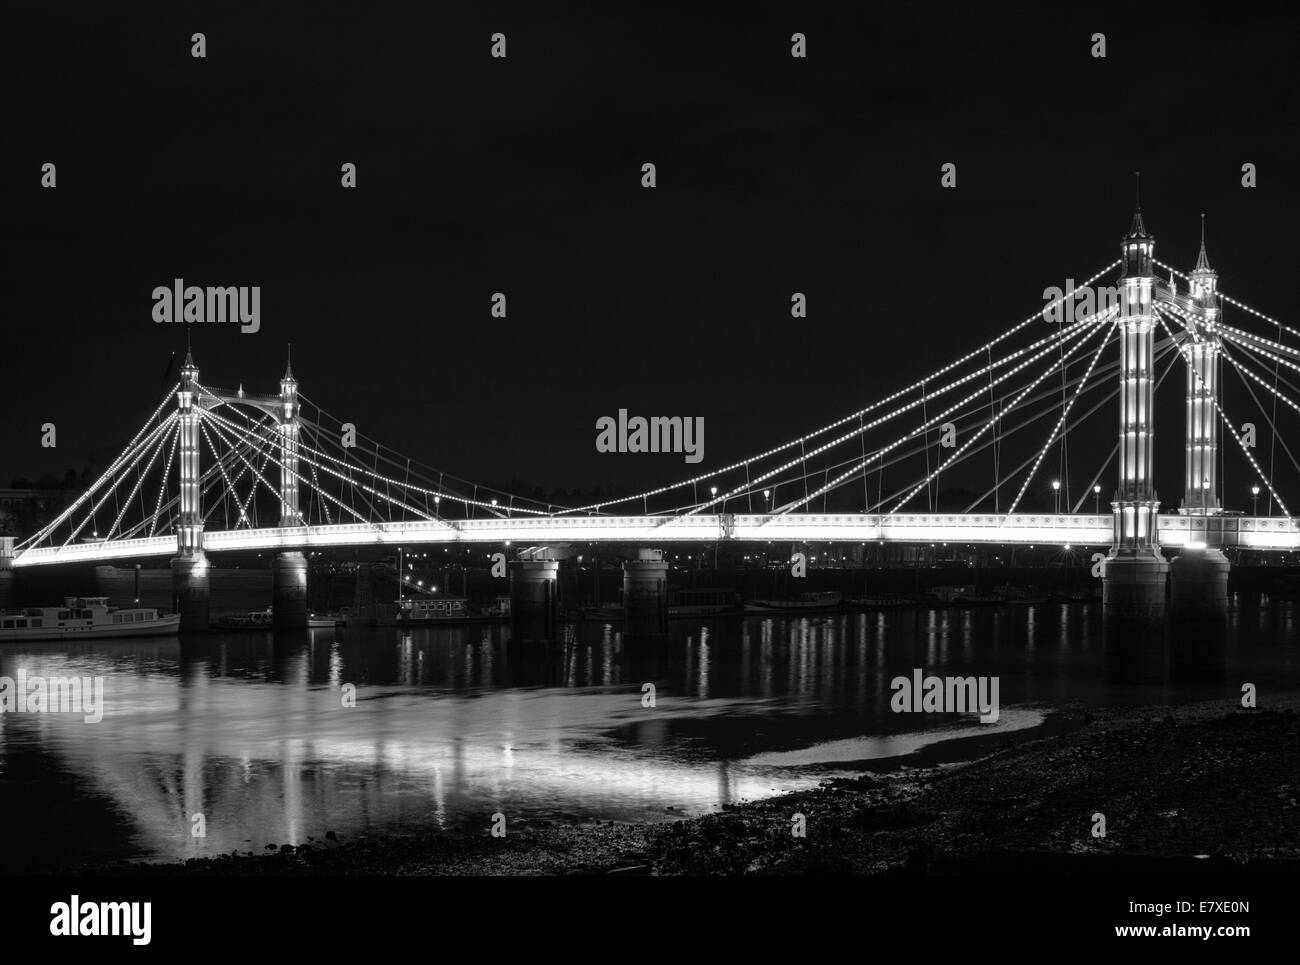 B&W image of Albert Bridge in London, England, at night. - Stock Image